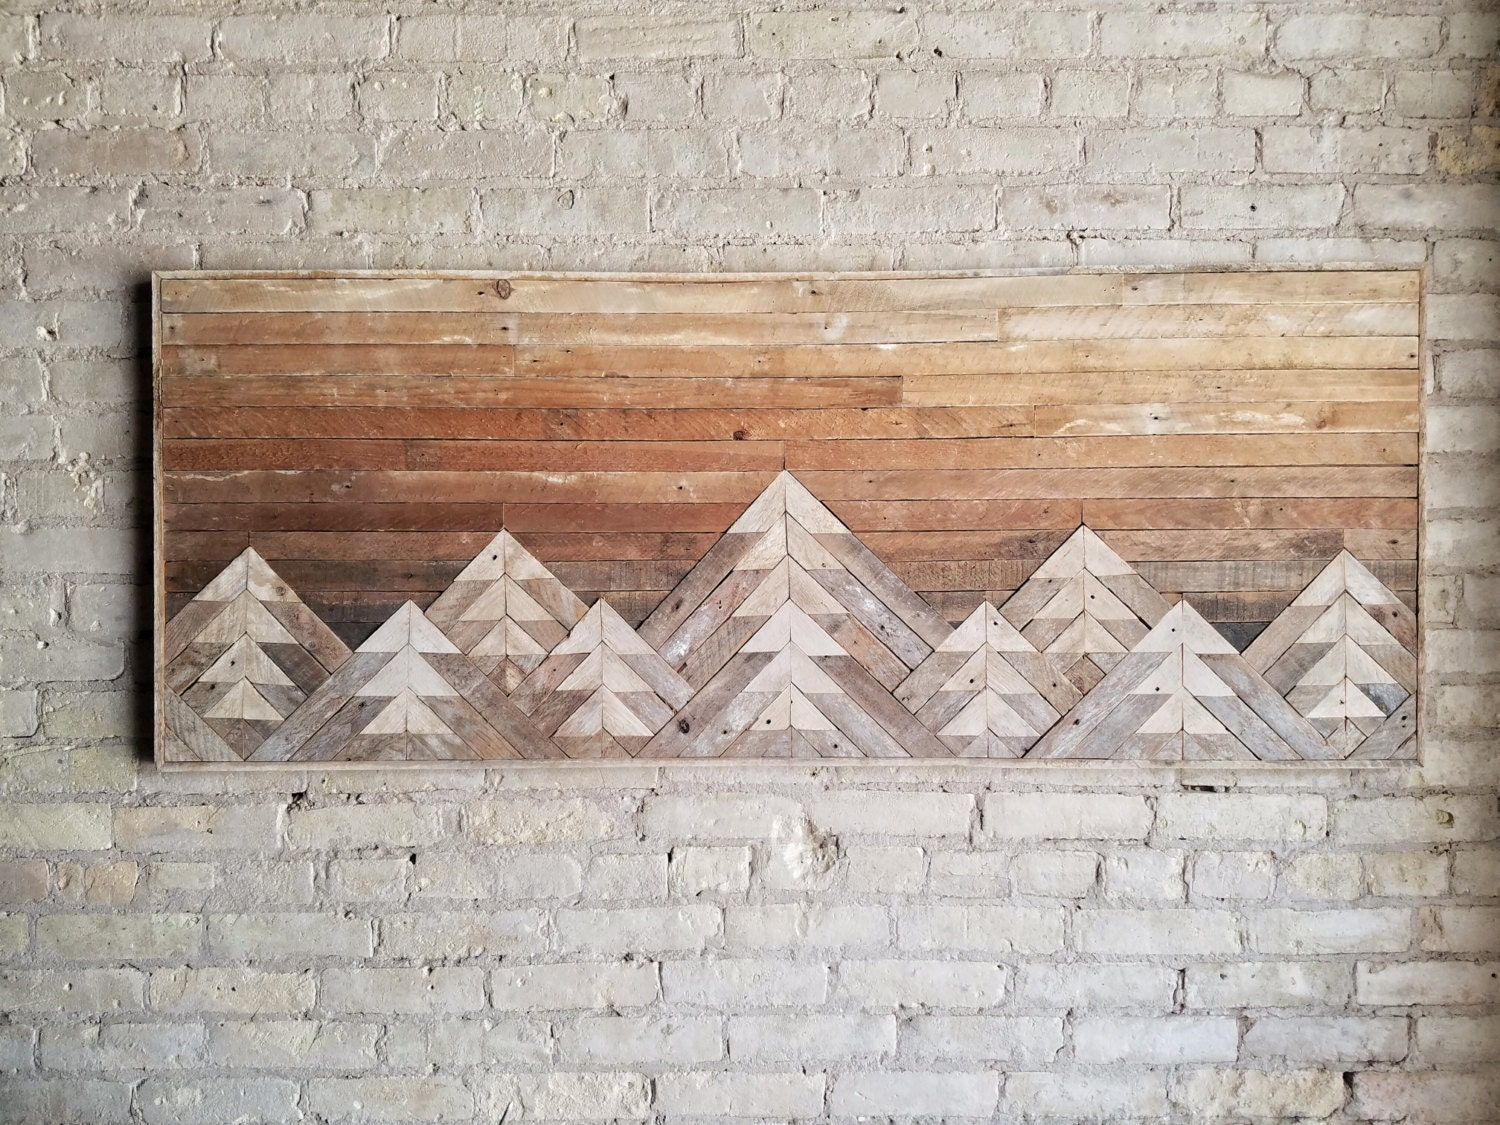 Reclaimed Wood Wall Art | Wall Decor | Wood Art | Queen Headboard | Wall Art | Mountain Art | Gradient Sky | Rustic Decor | Modern | 61x24 & Reclaimed Wood Wall Art | Wall Decor | Wood Art | Queen Headboard ...